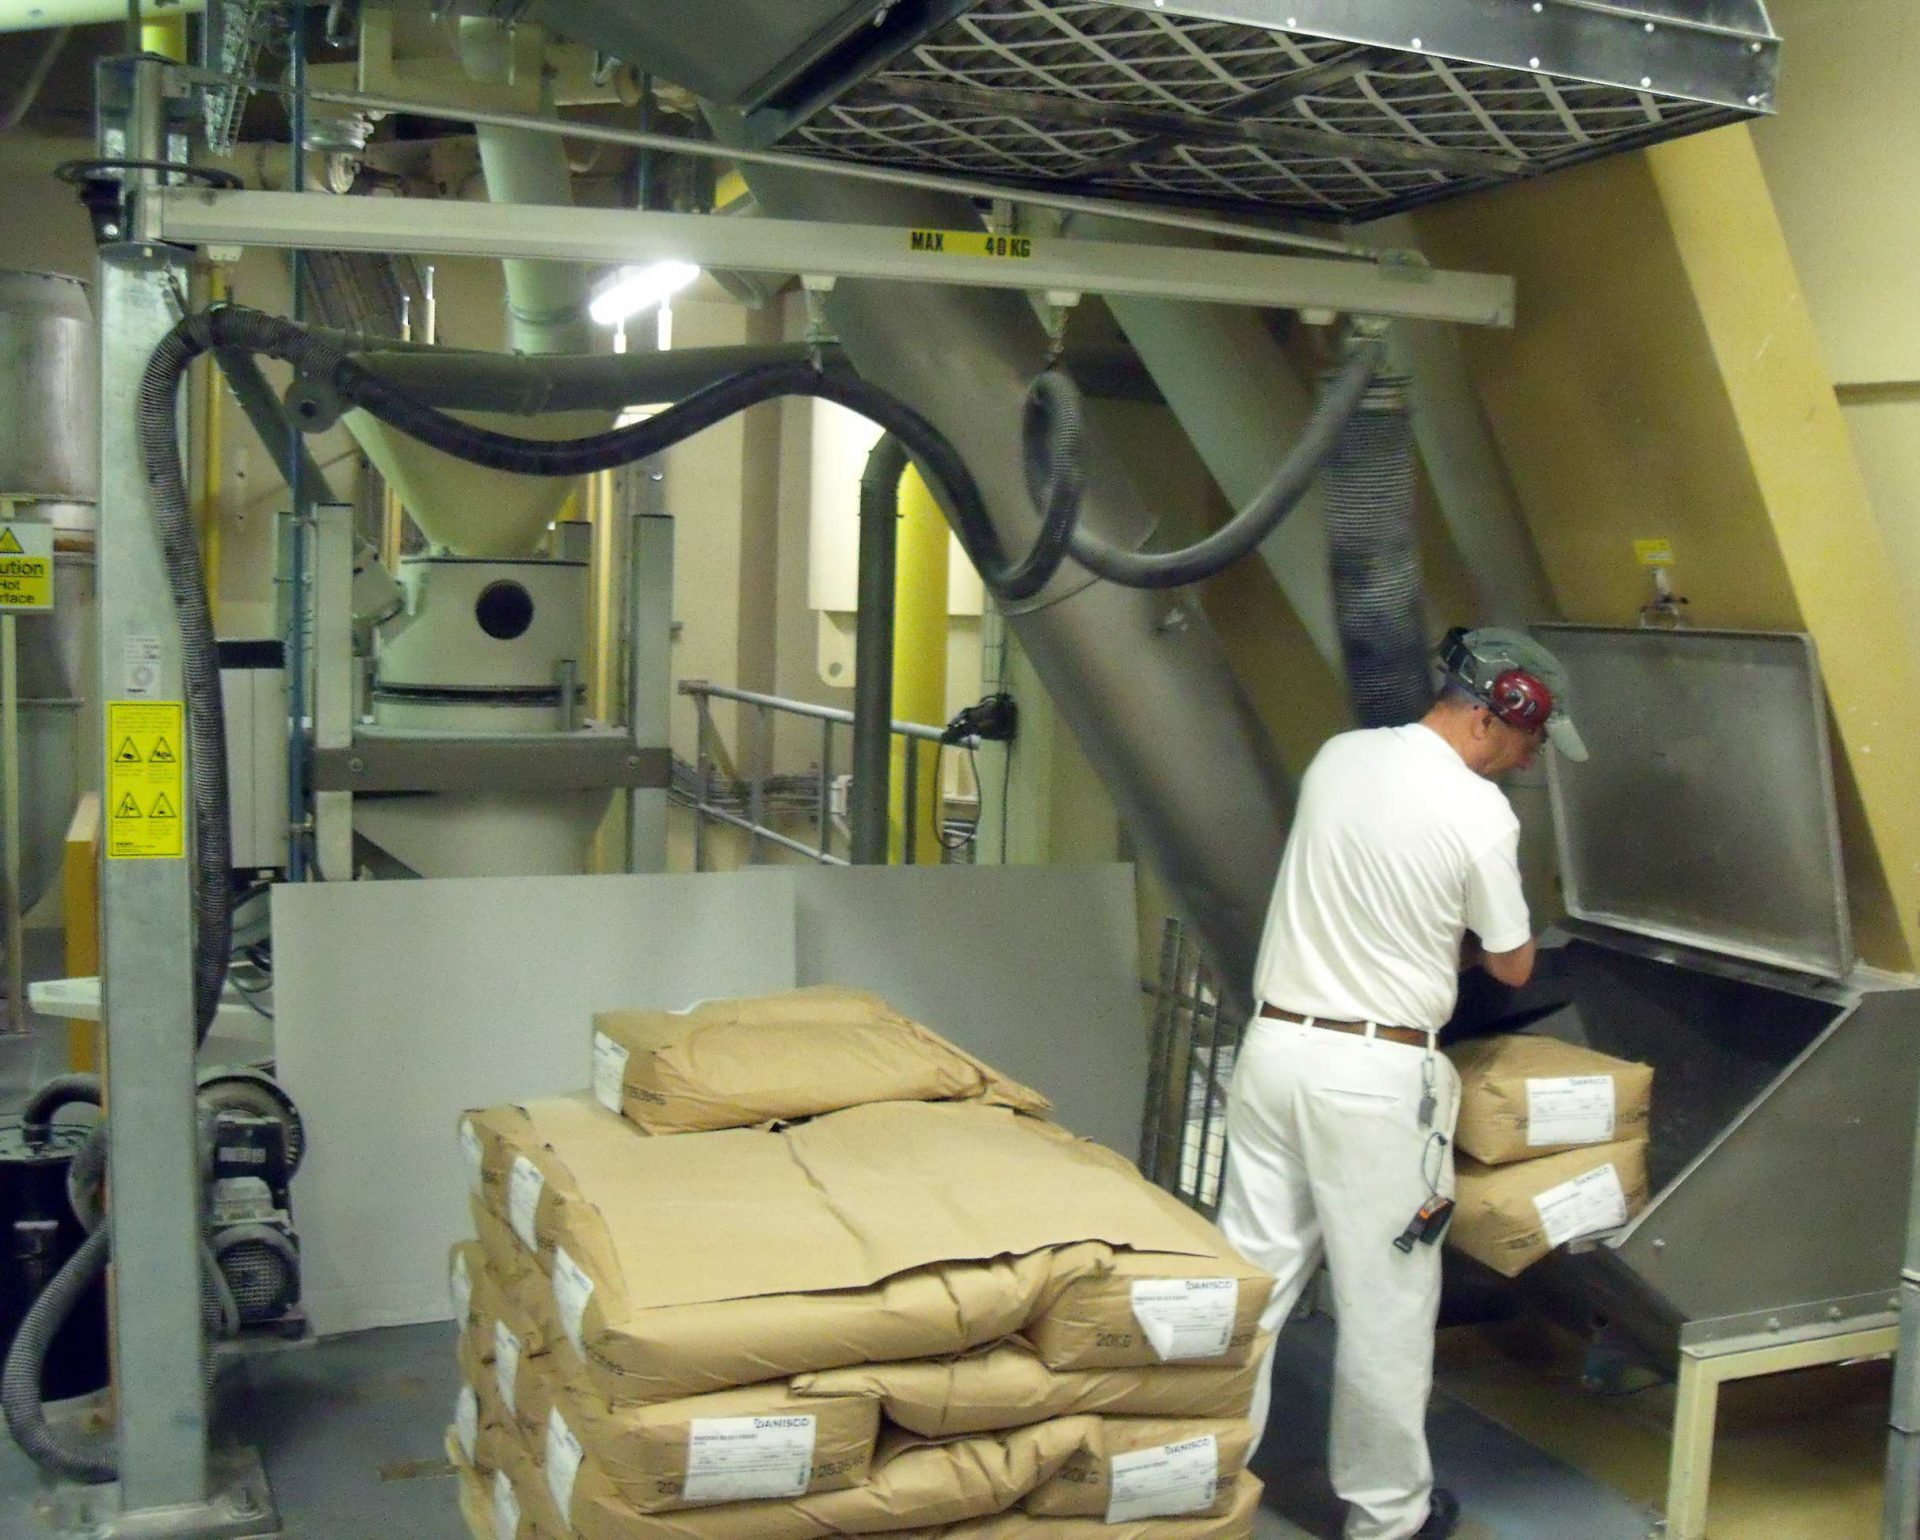 lifting sacks in pharmaceutical weigh room